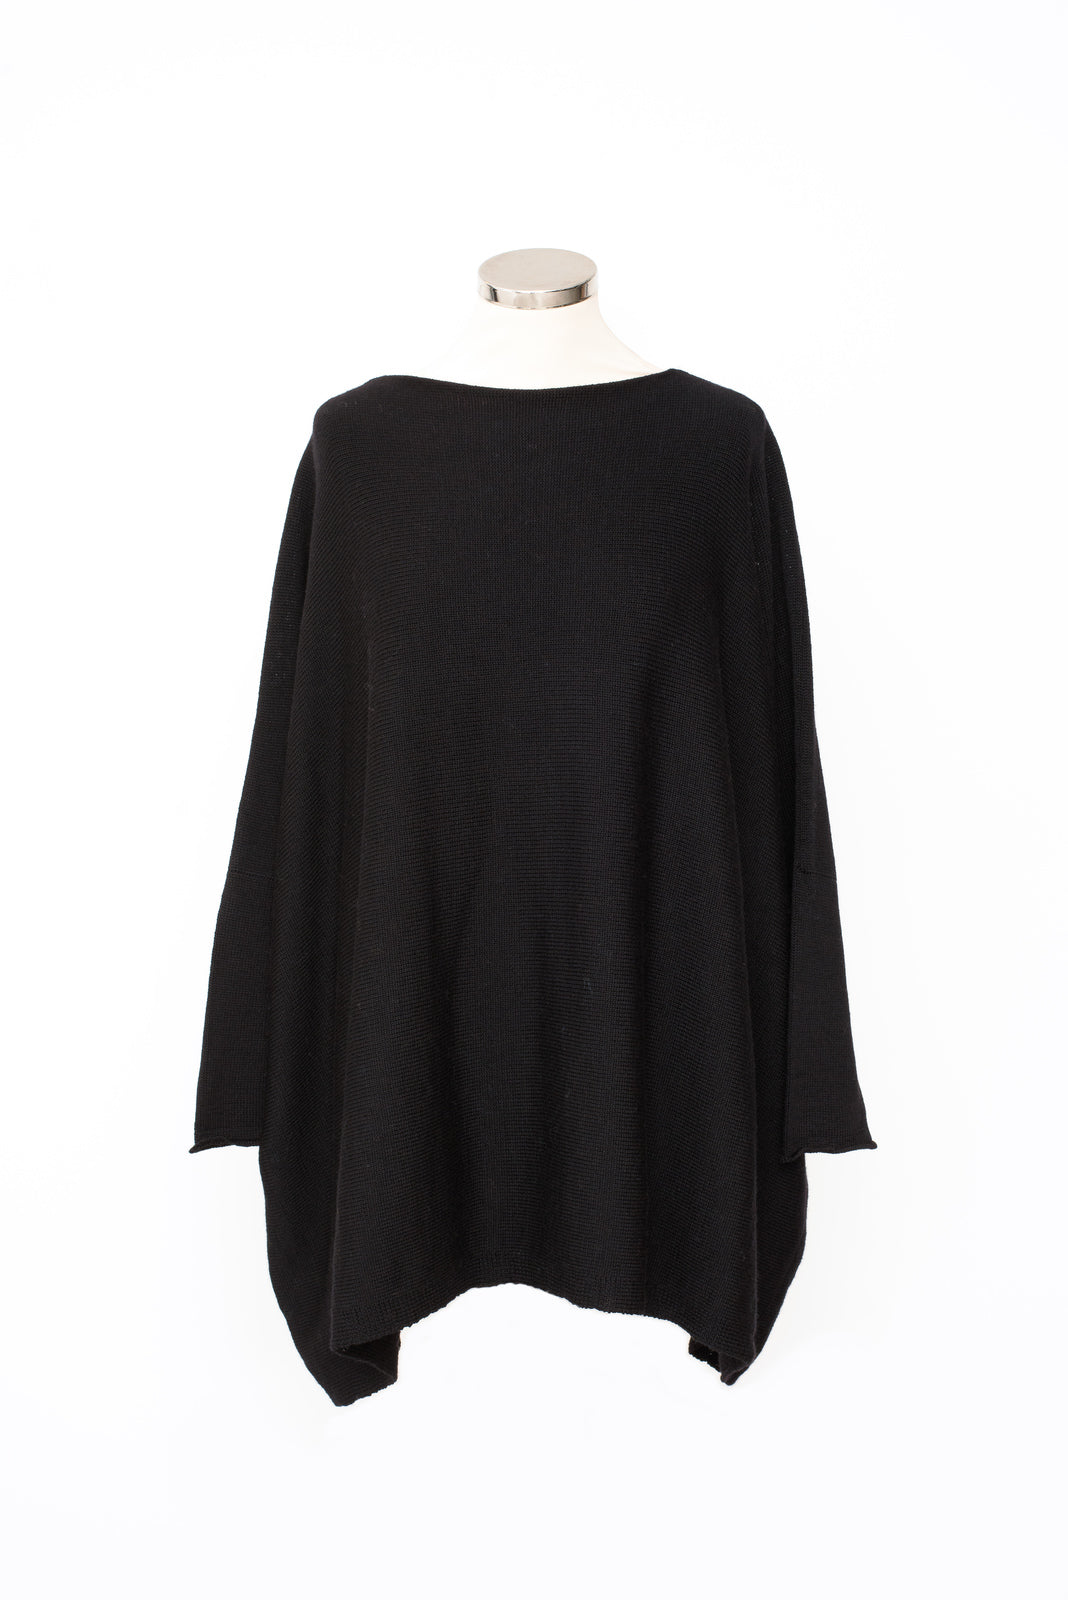 Slash Neck Sideways Shaped Sleeve Jumper